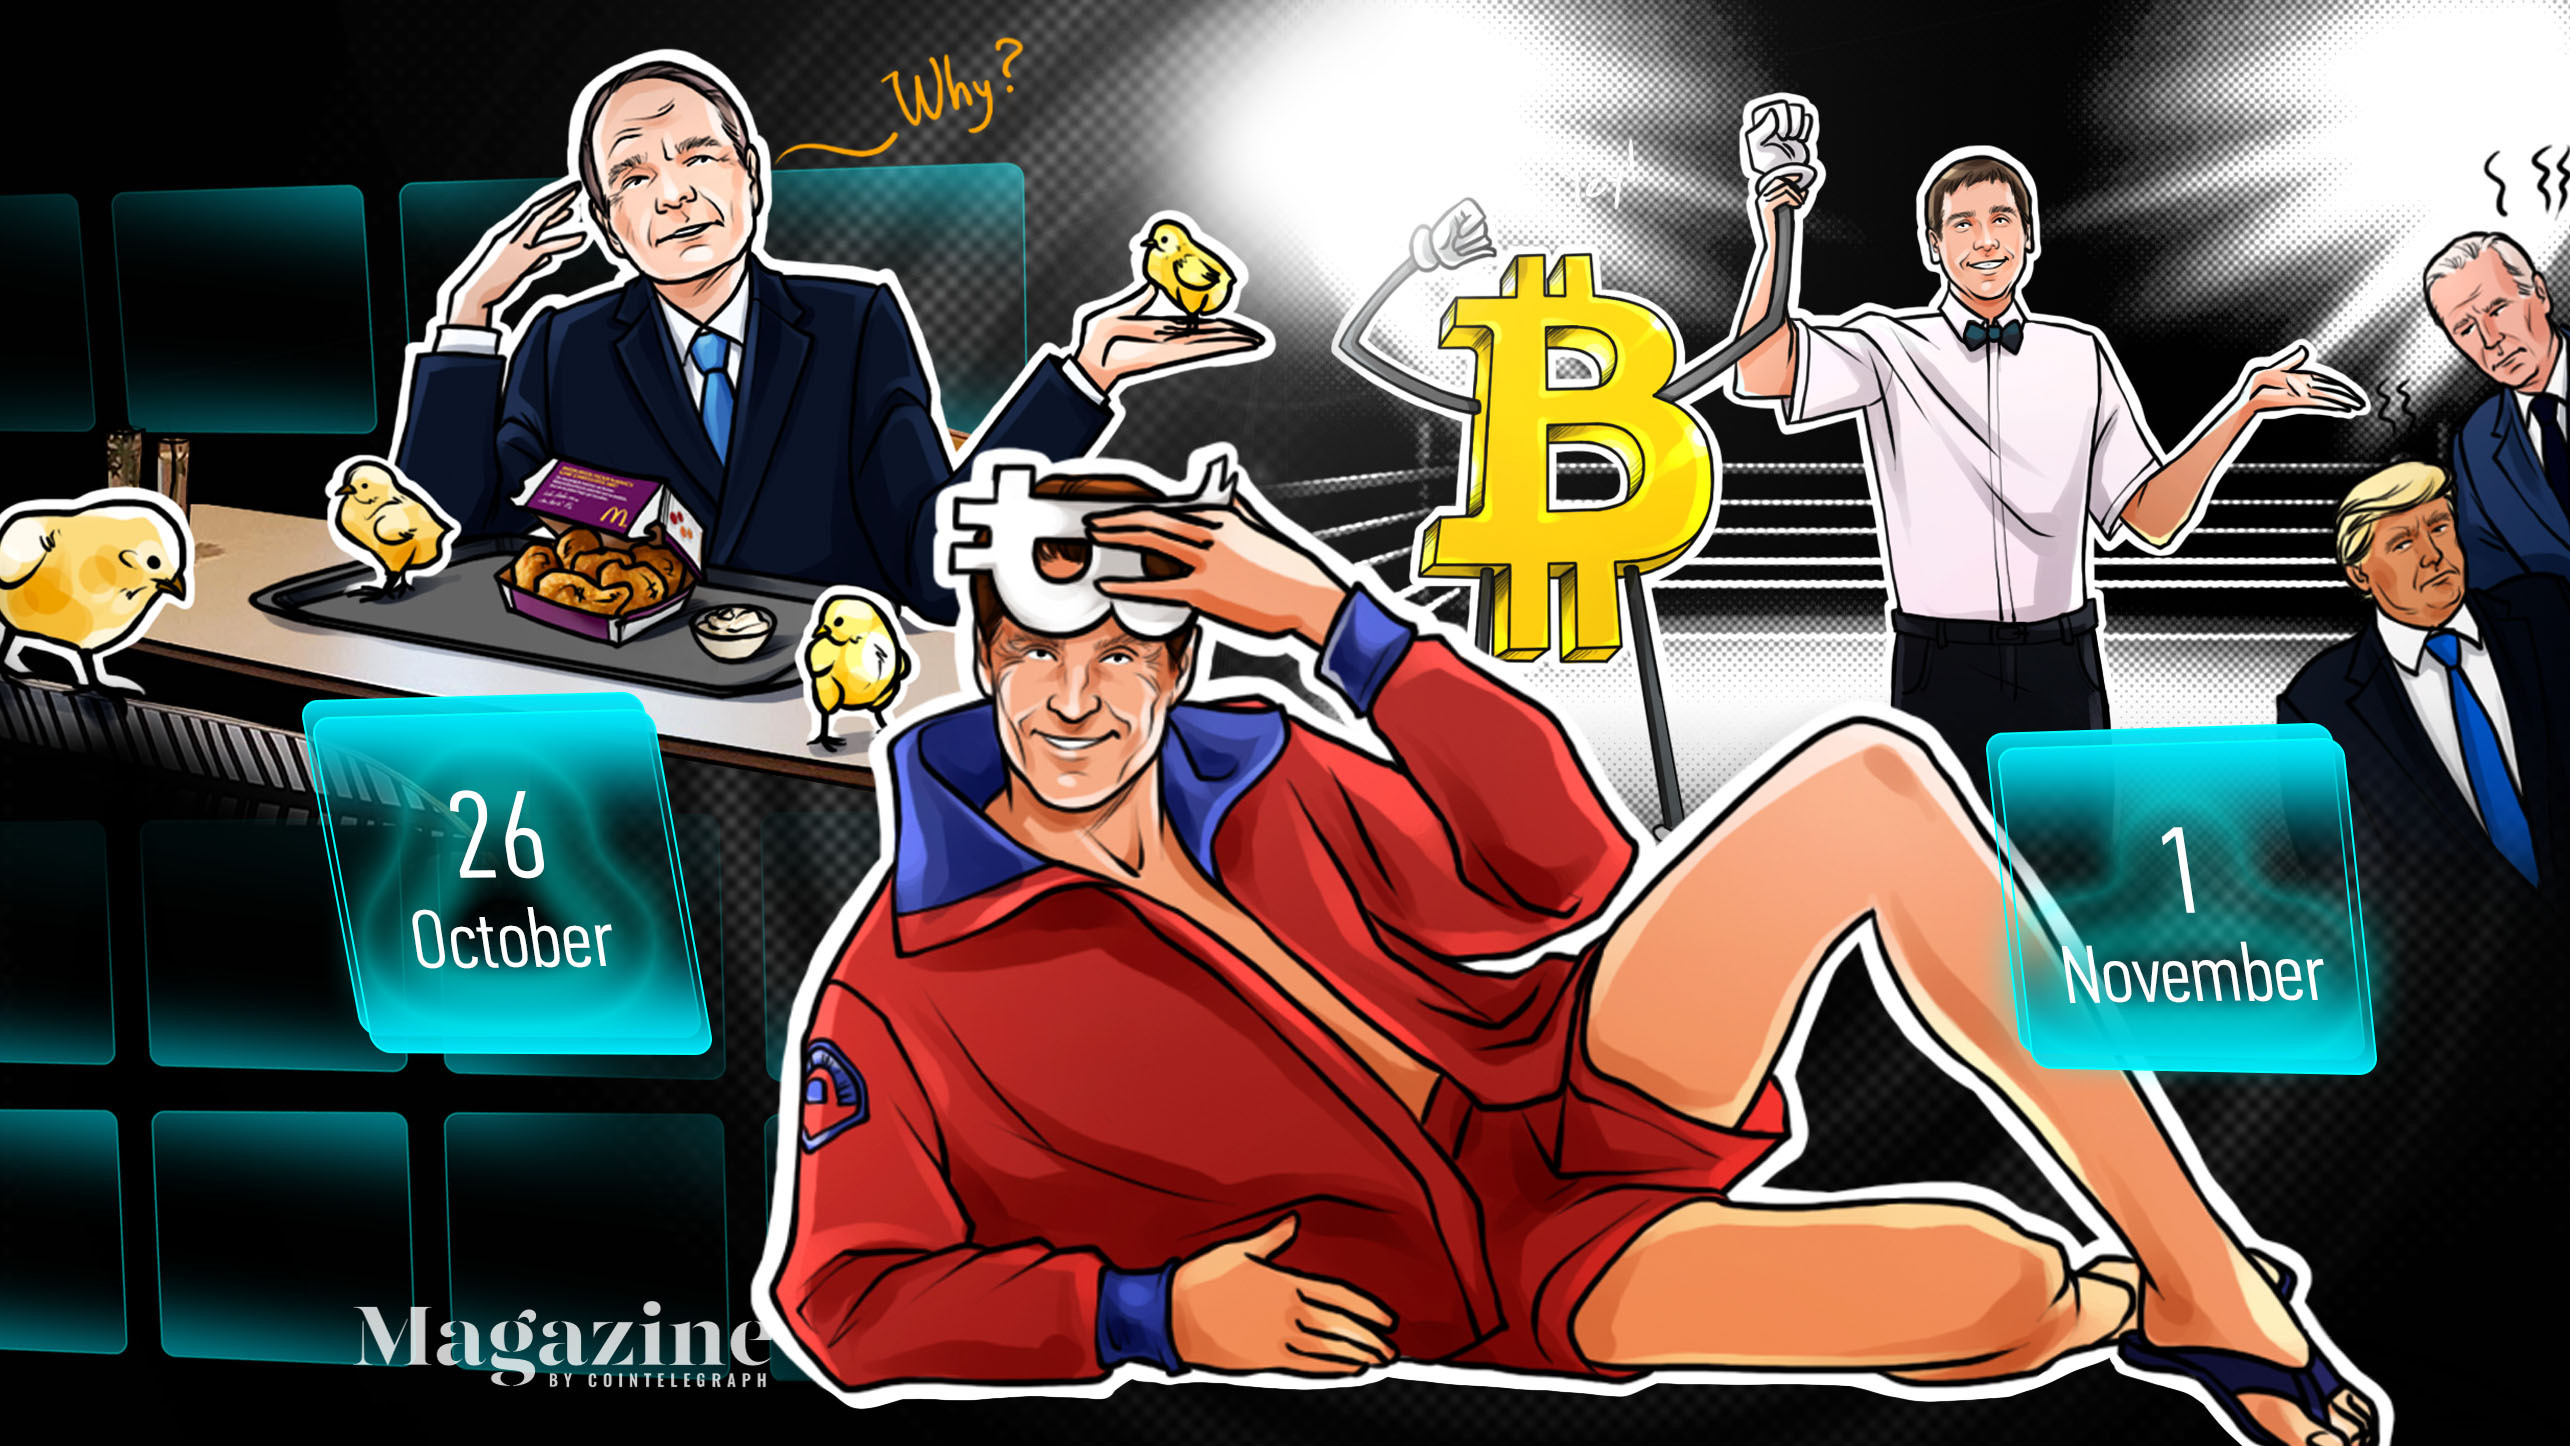 Bitcoin hits $14K, UNI airdrop rejected, scammers target Trump: Hodler's Digest, Oct. 26–Nov. 1